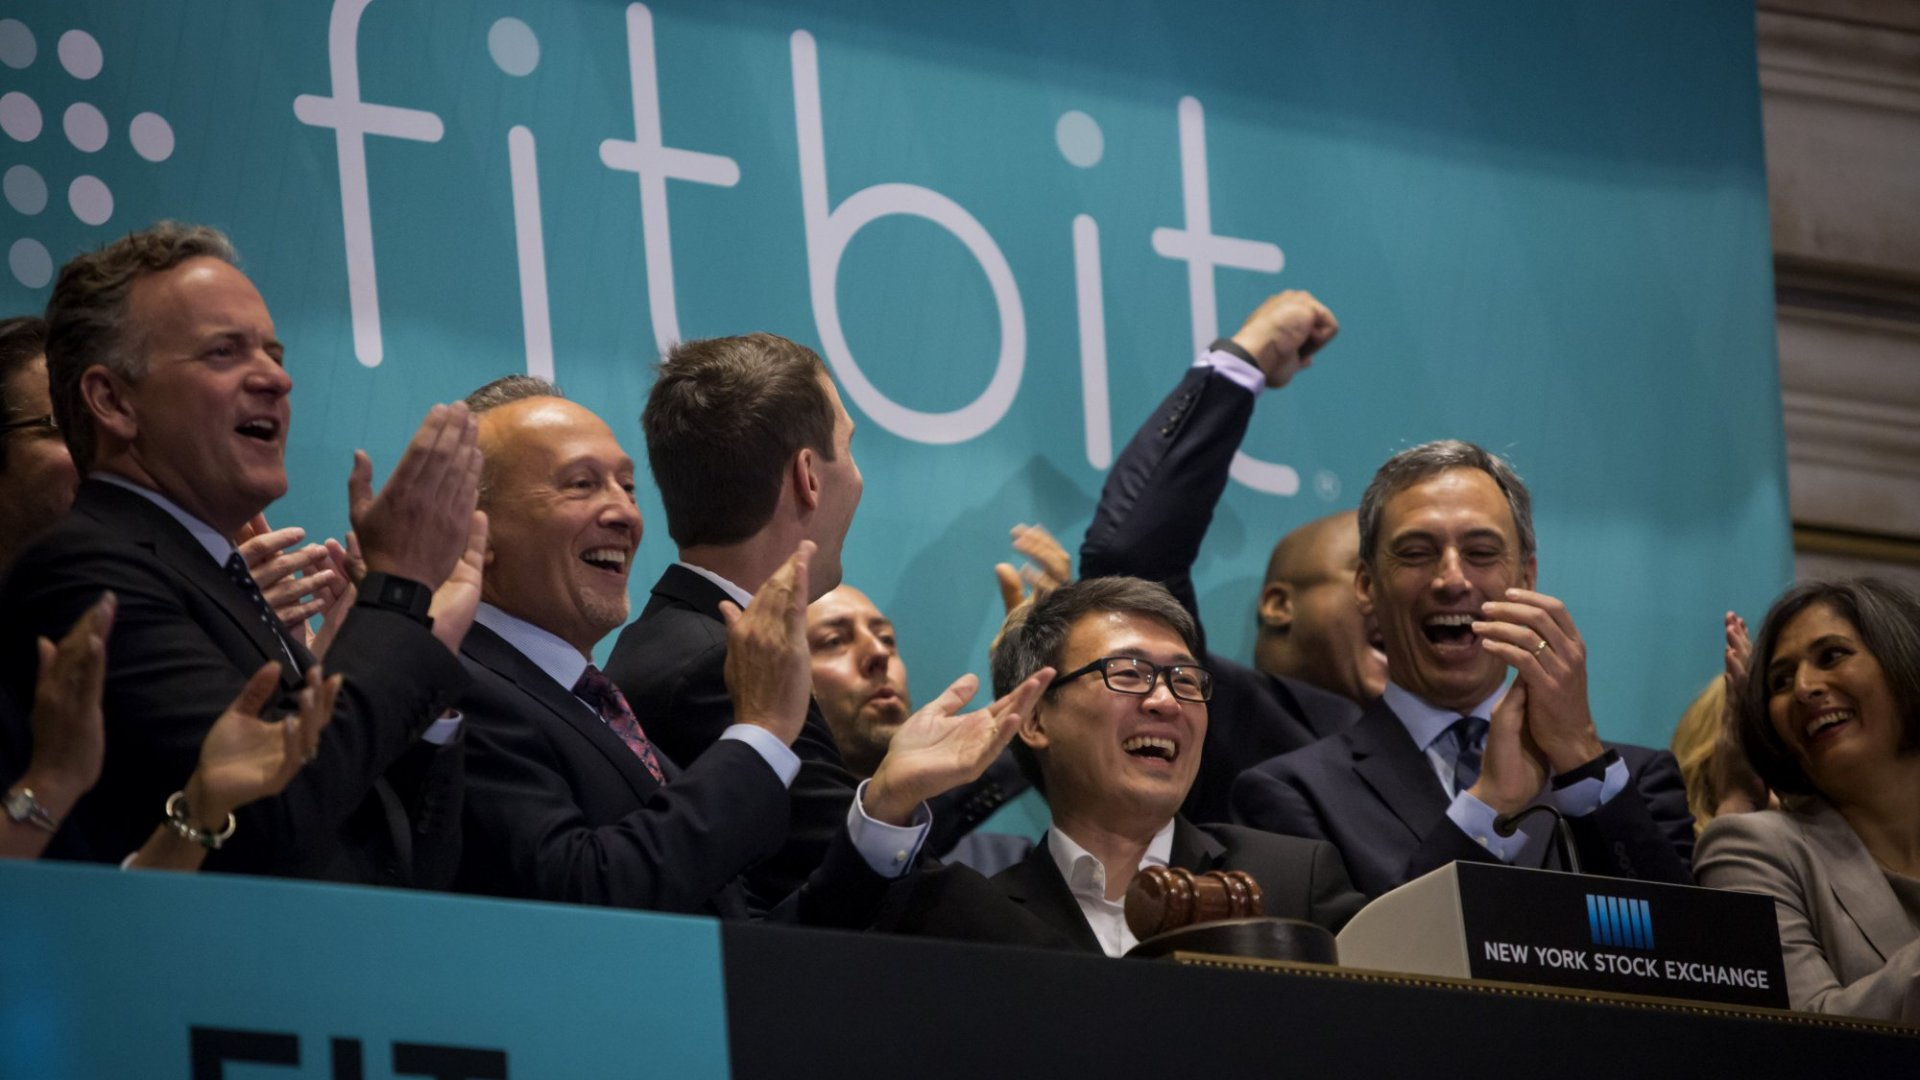 Fitbit Did Not Steal Jawbone's Trade Secrets, U.S. International Trade Commission Rules